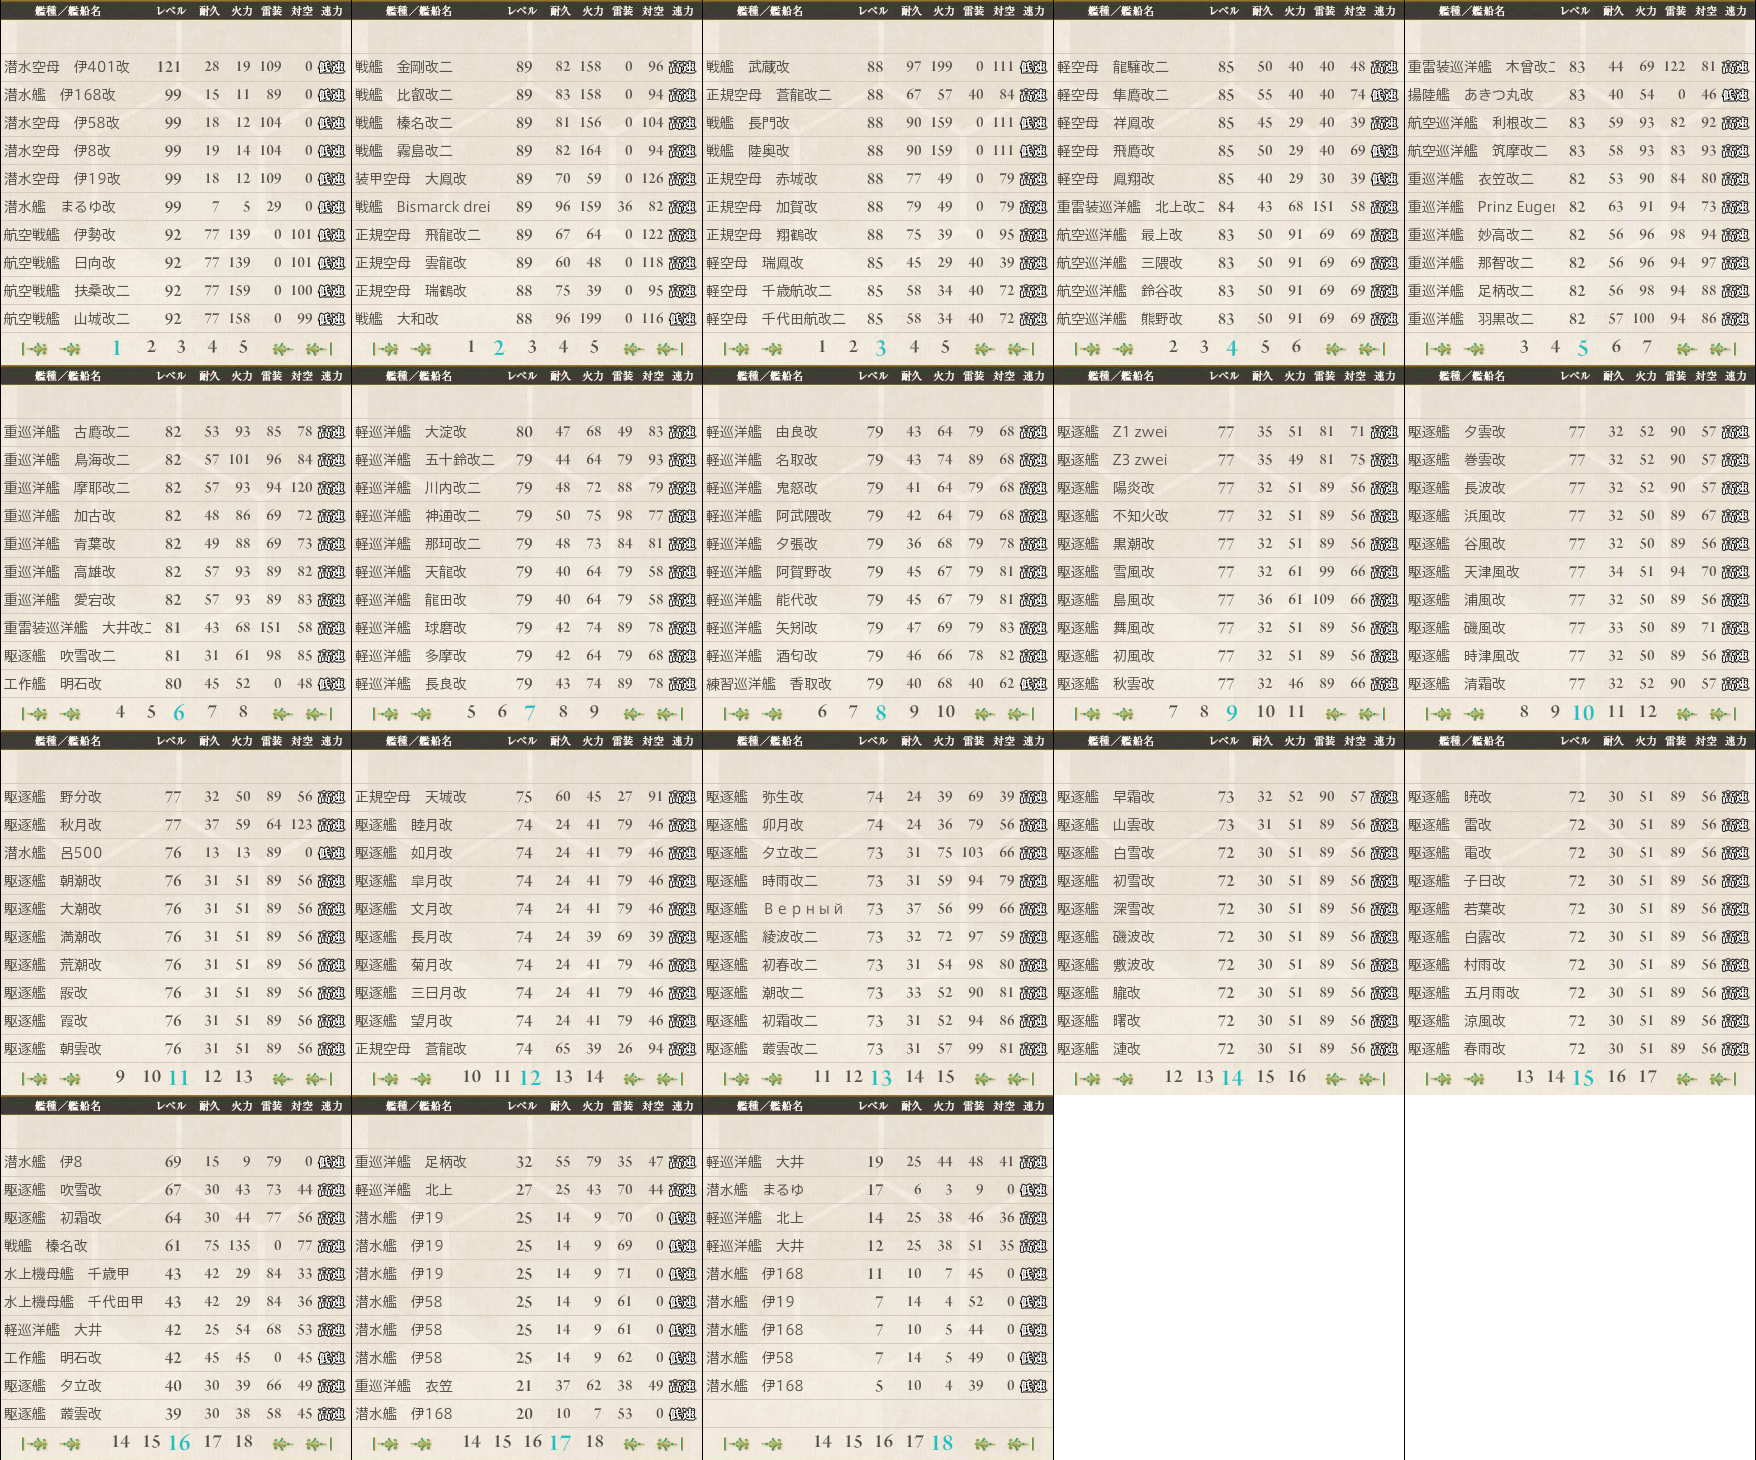 data.kancolle.levelsort.20150419.png